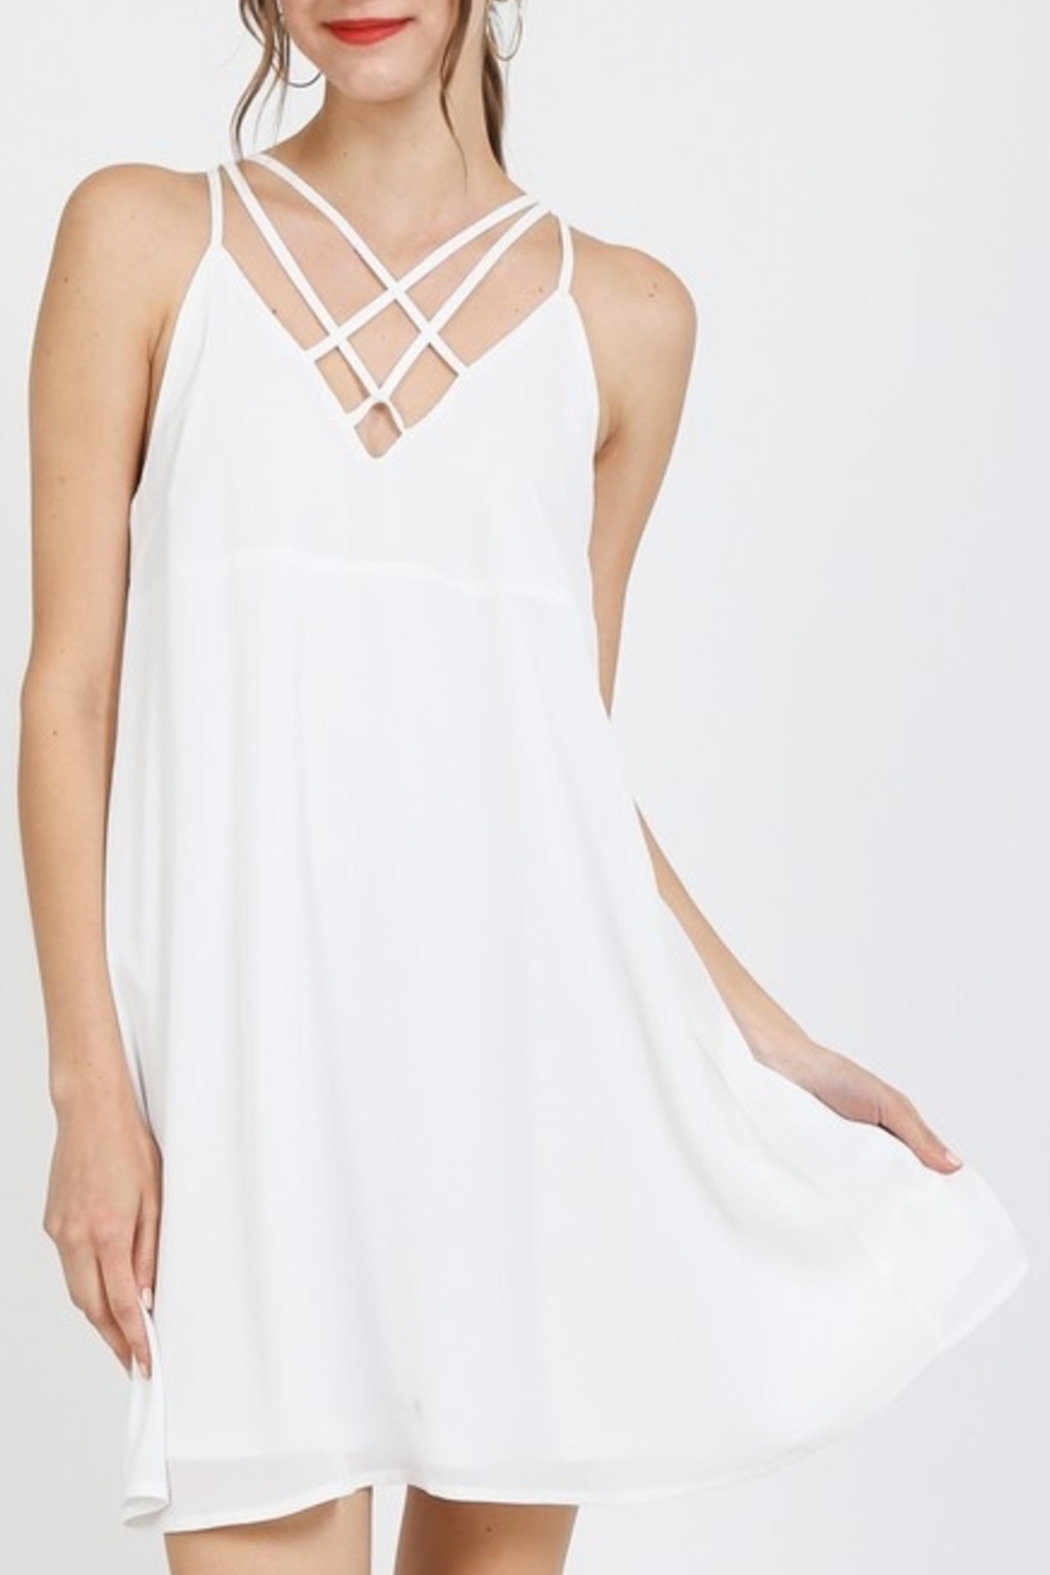 Very J Pretty Please dress - Front Cropped Image